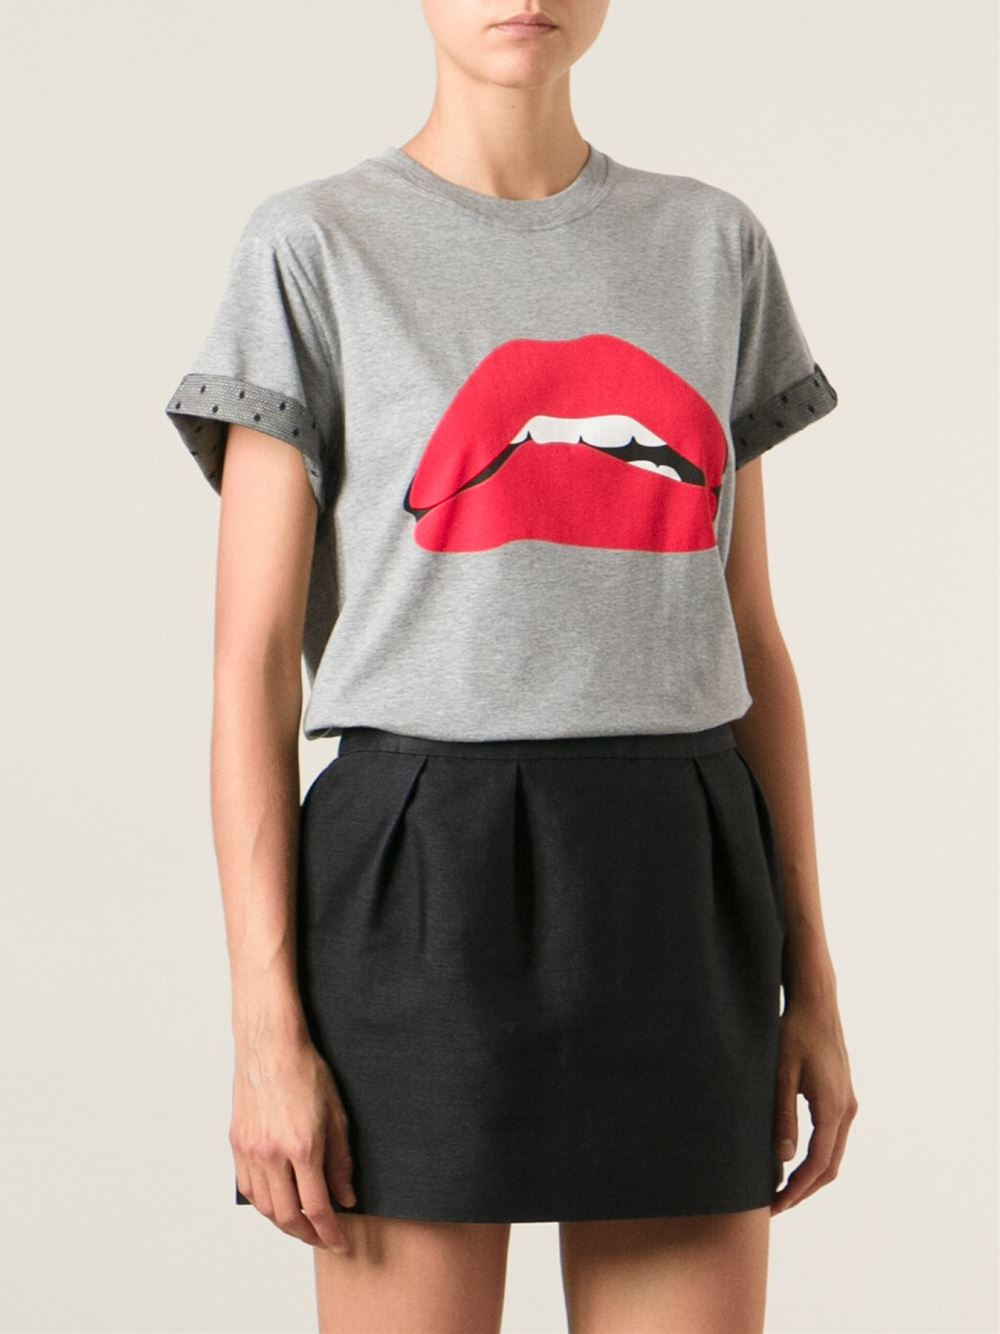 Lyst red valentino lips print t shirt in gray for Red valentino t shirt